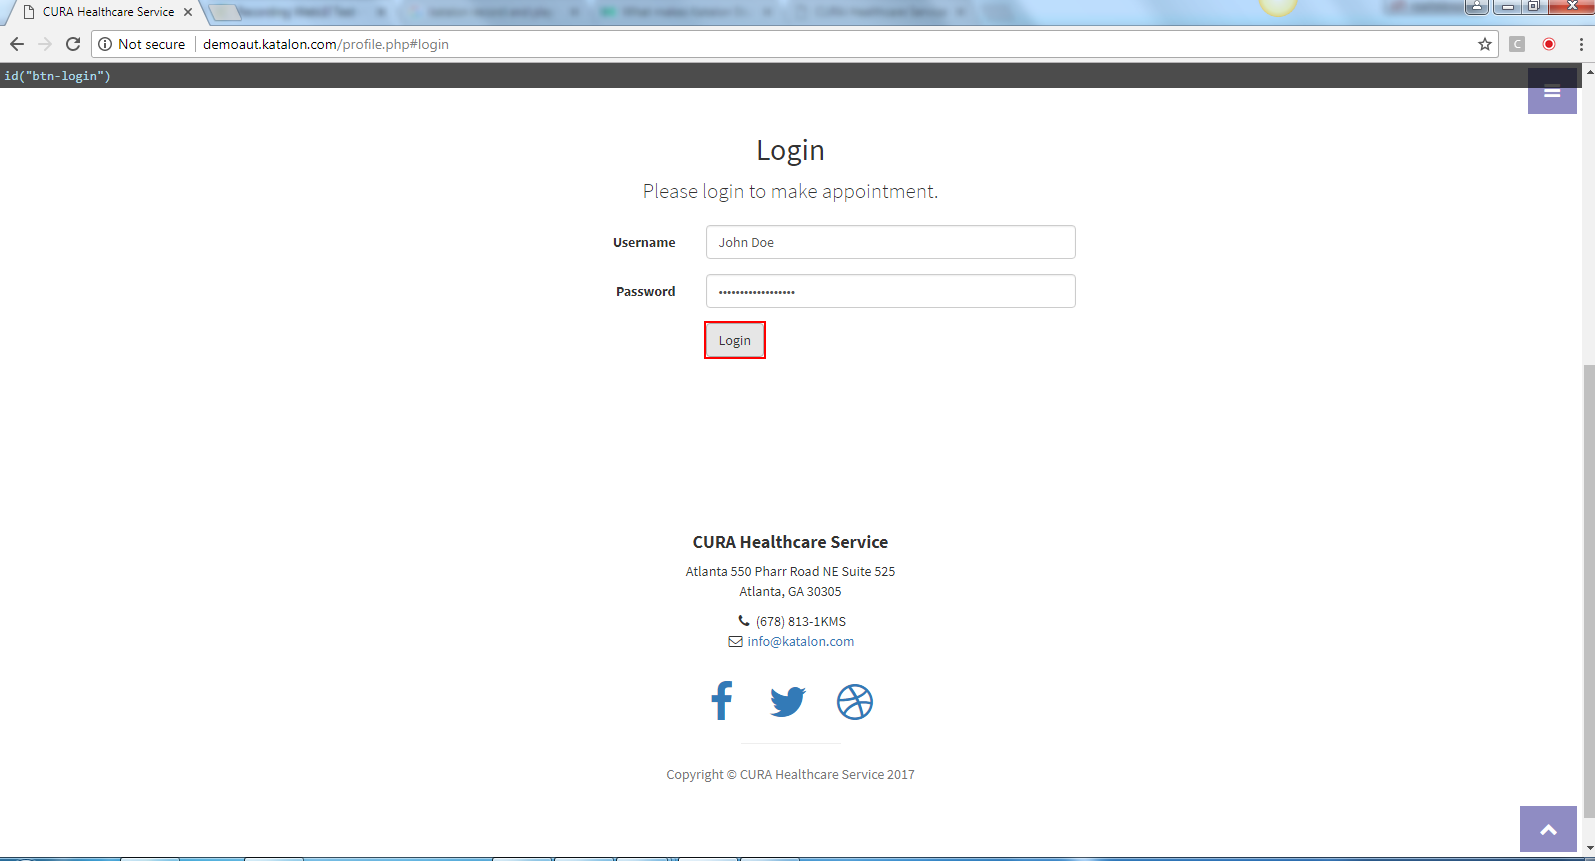 Make Appointment button